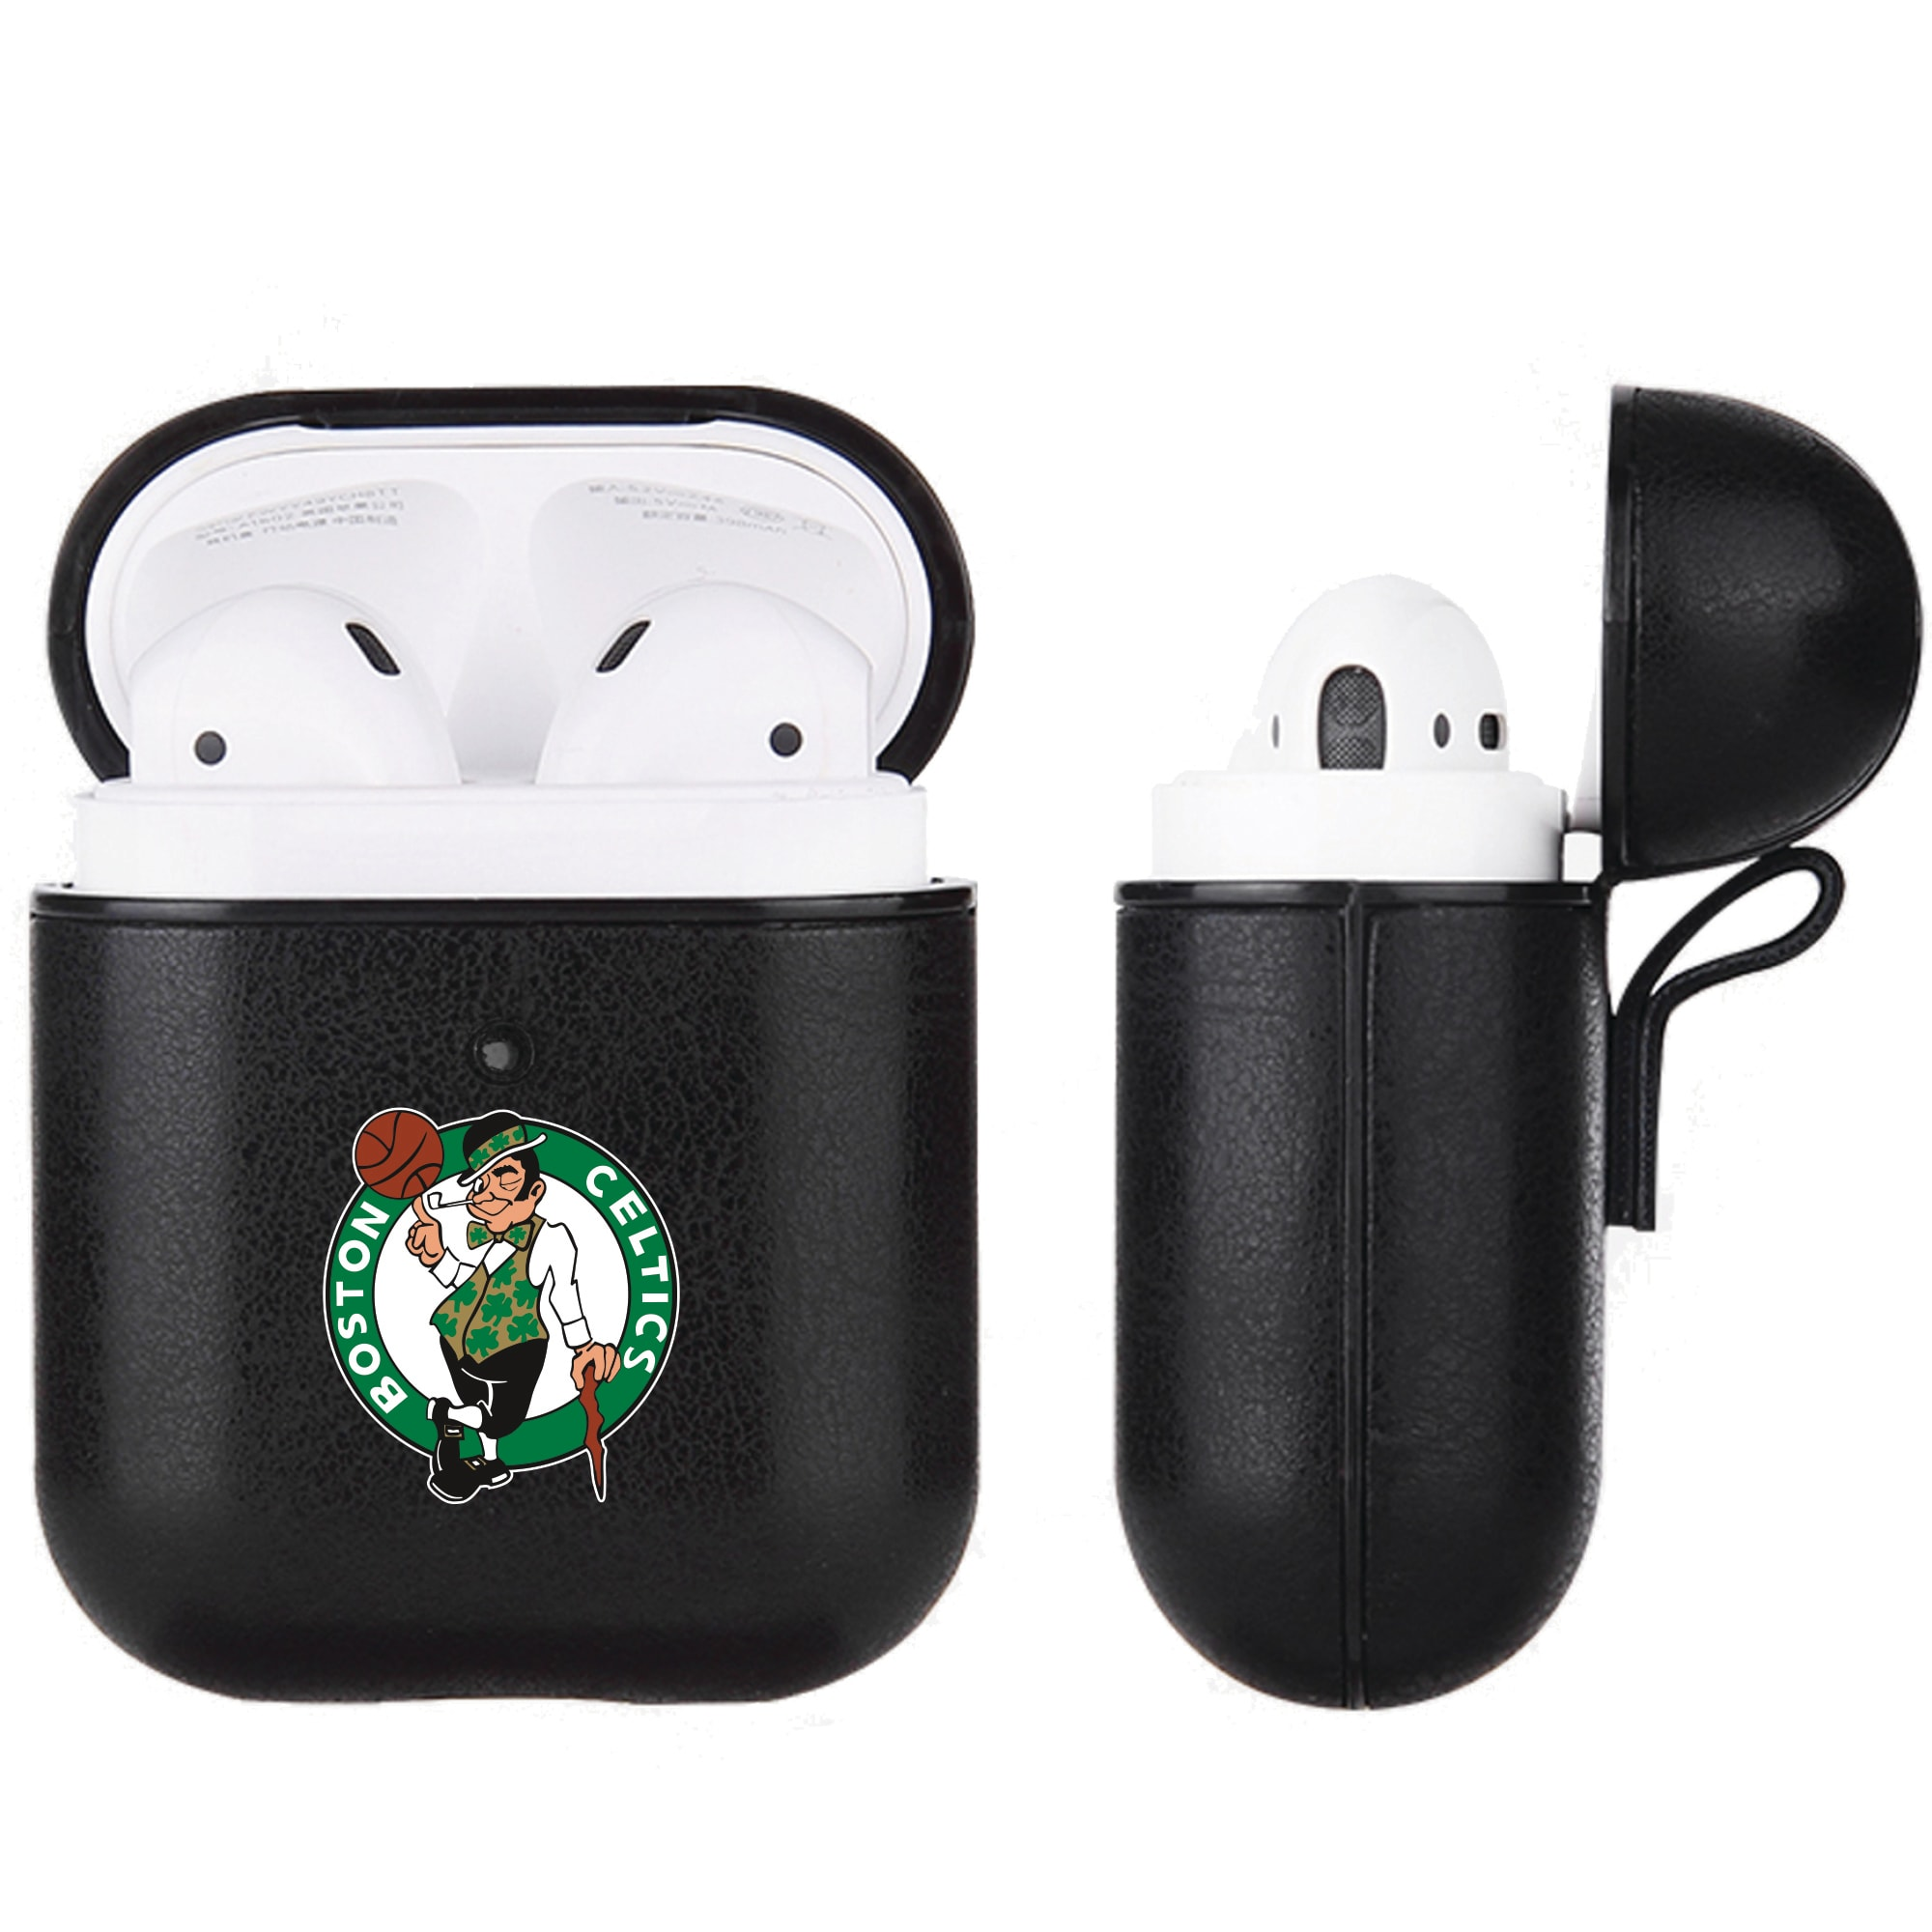 Boston Celtics Air Pods Black Leatherette Case